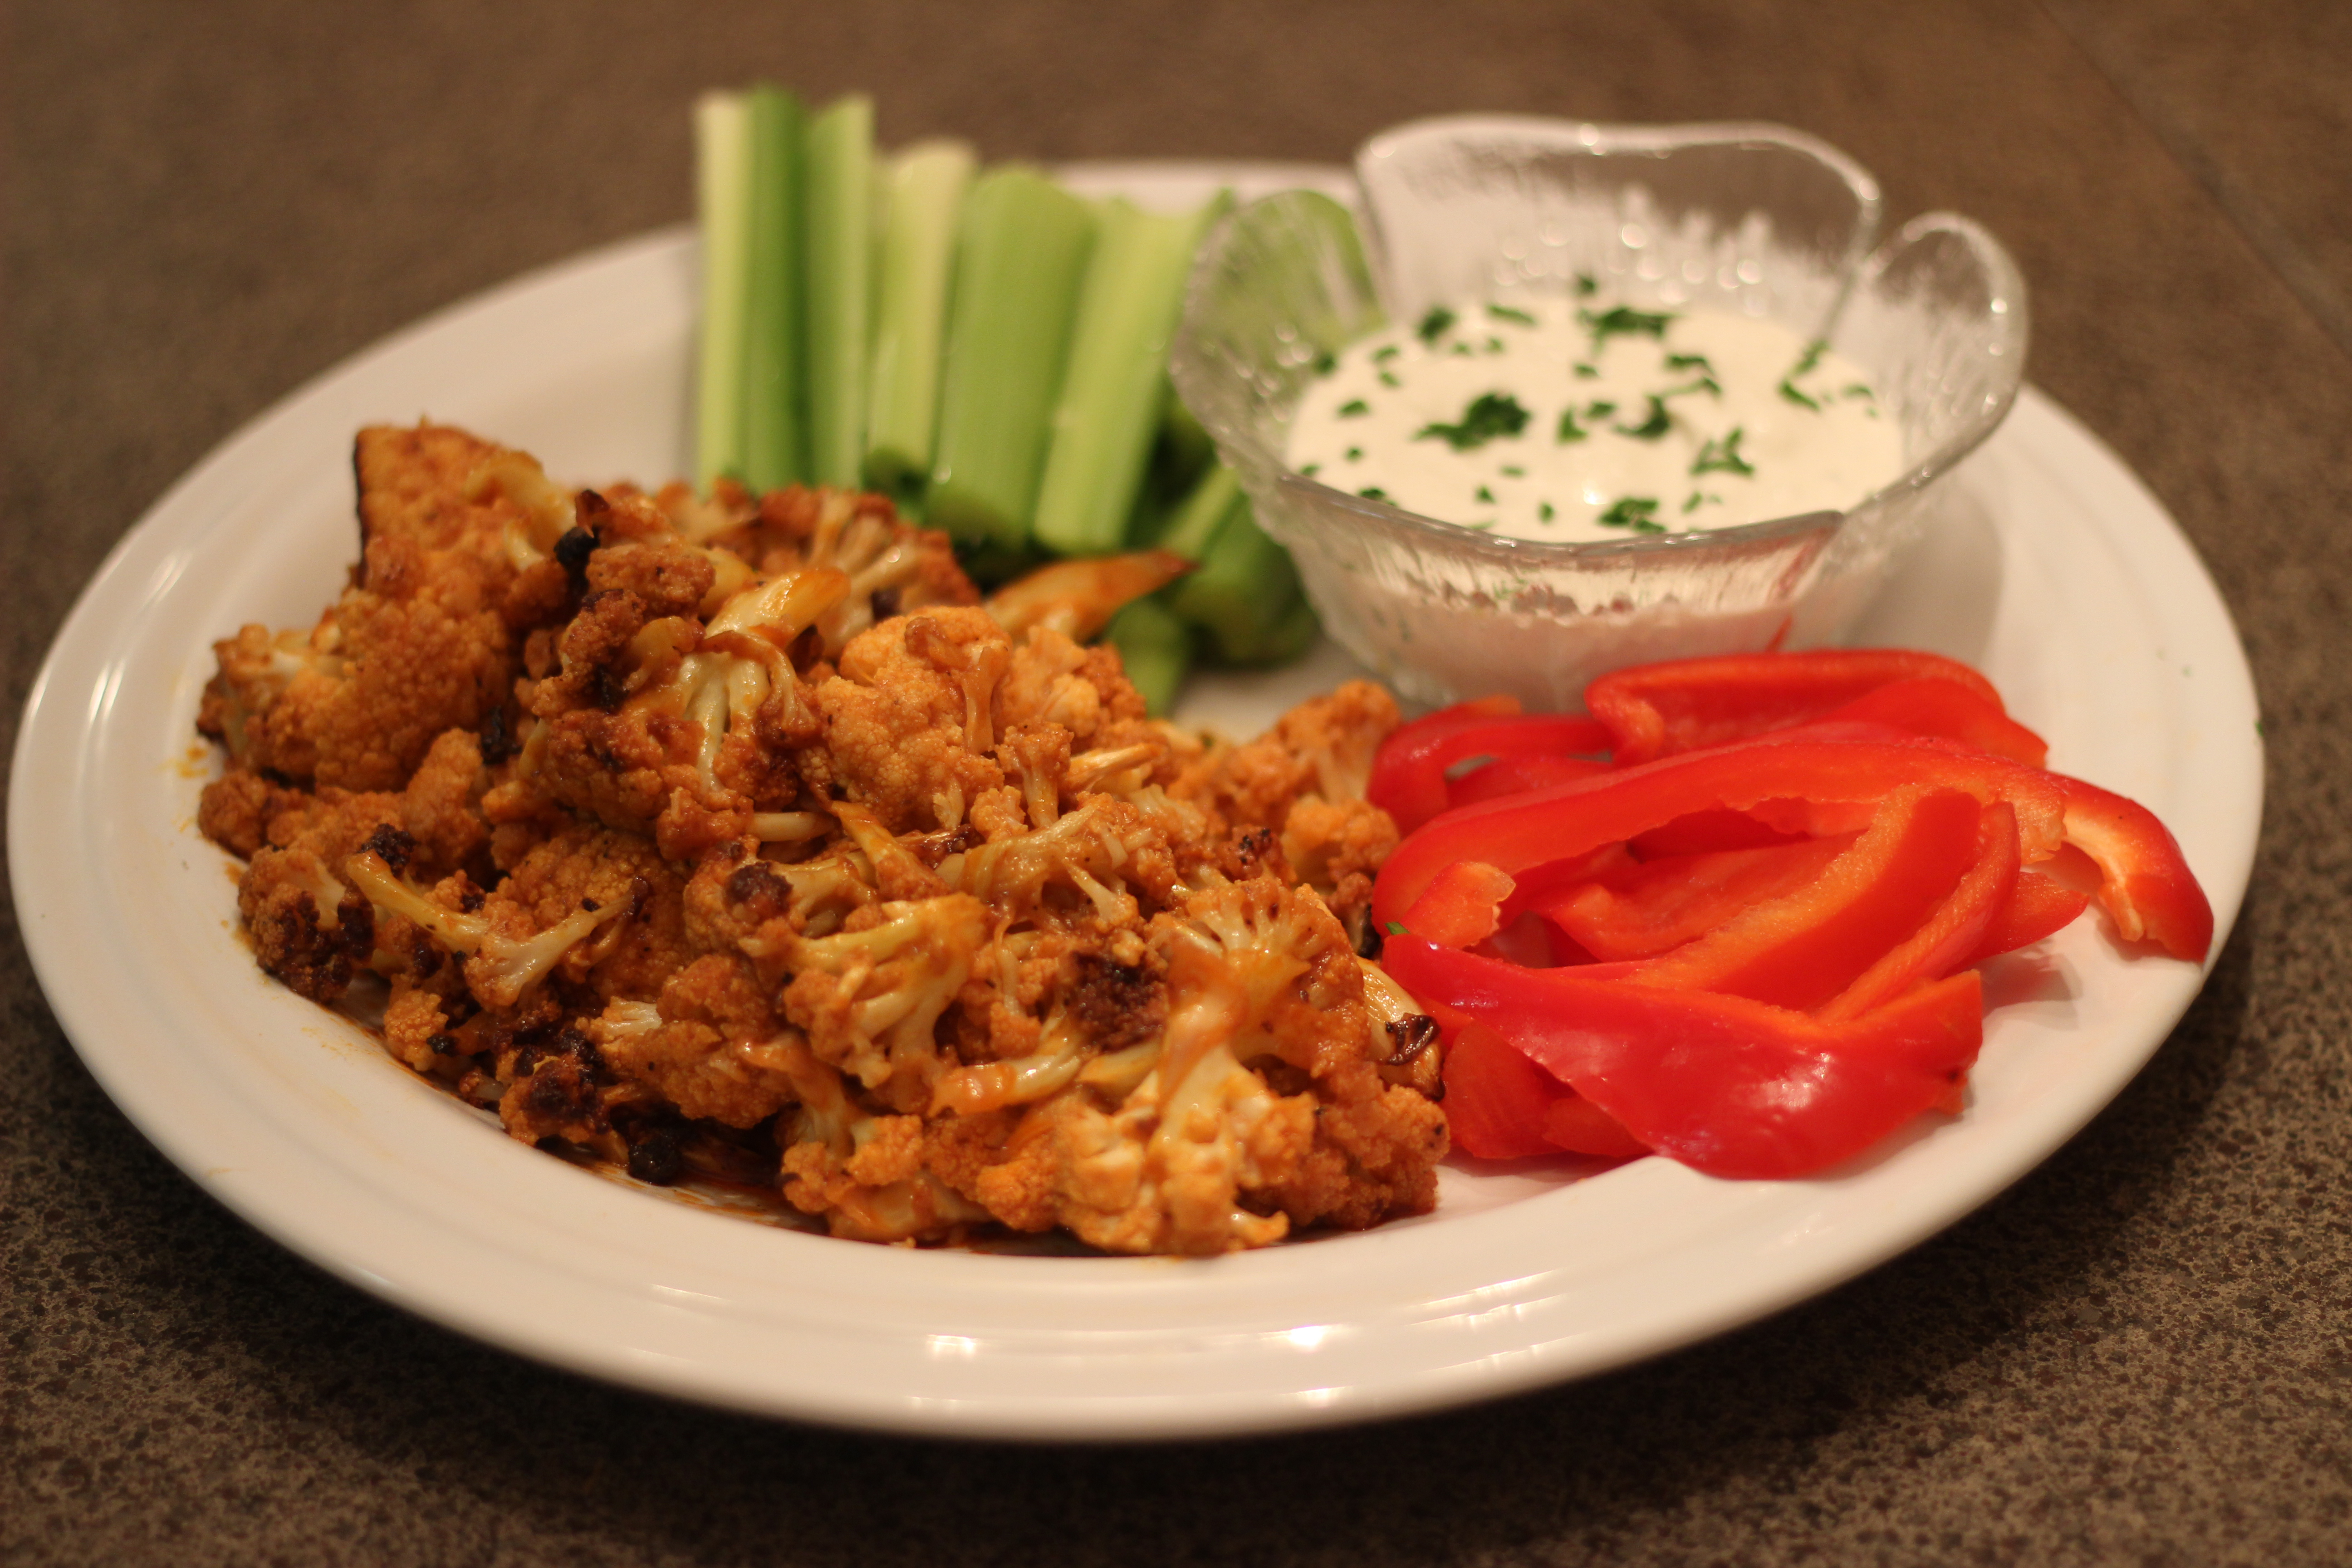 CardioMender, MD diet recipe buffalo cauliflower substitute for buffalo chicken wings